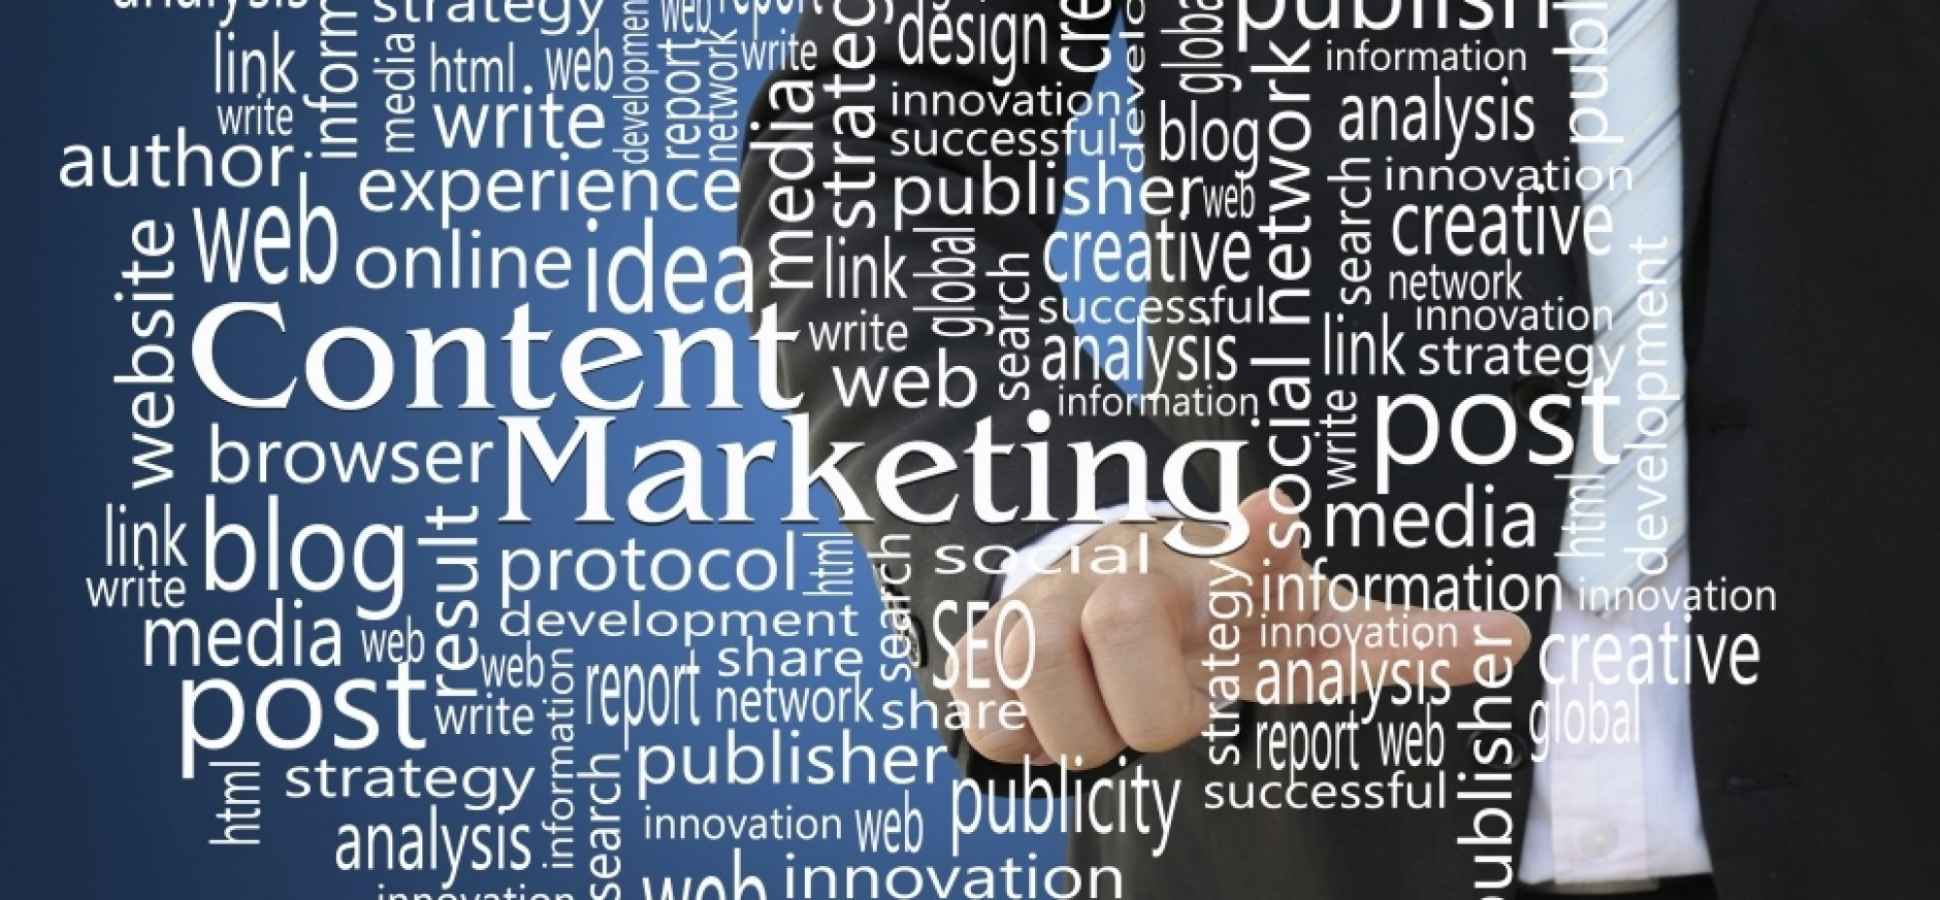 6 Companies That Are Dominating Content Marketing